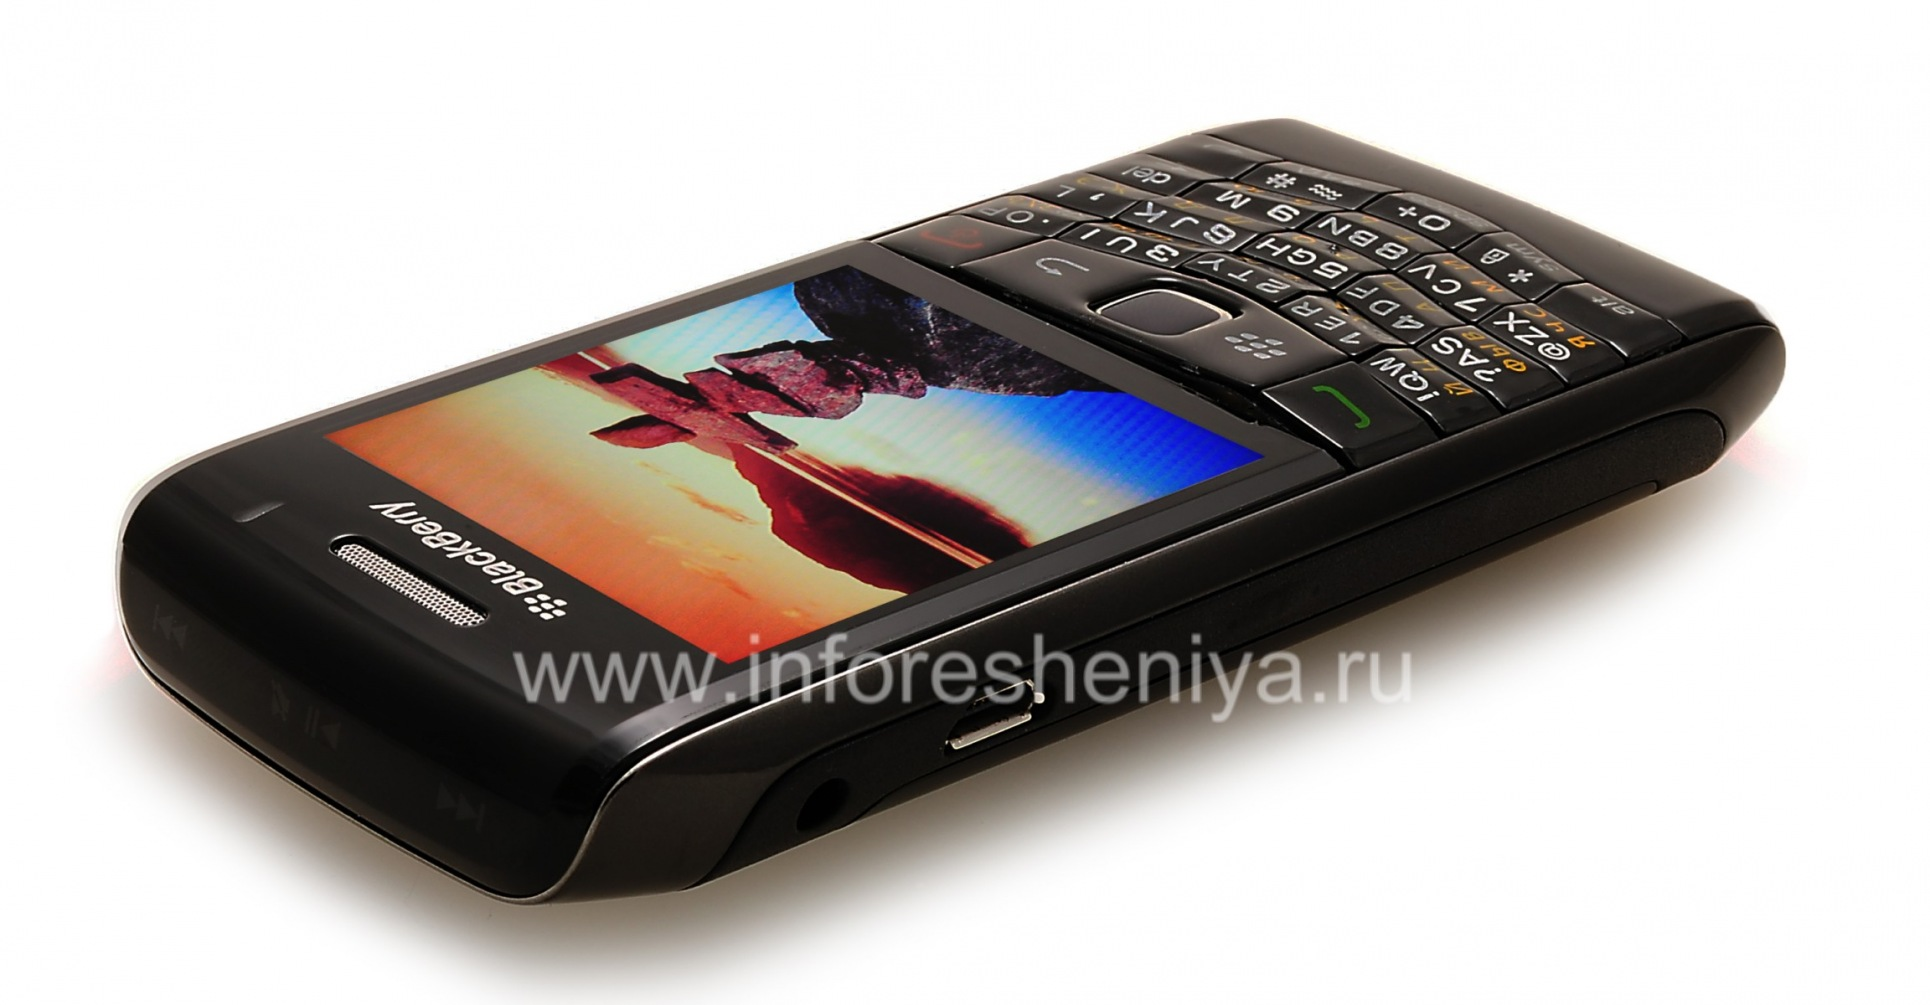 ... Photo 23 — Smartphone BlackBerry 9100 Pearl 3G, Black ...